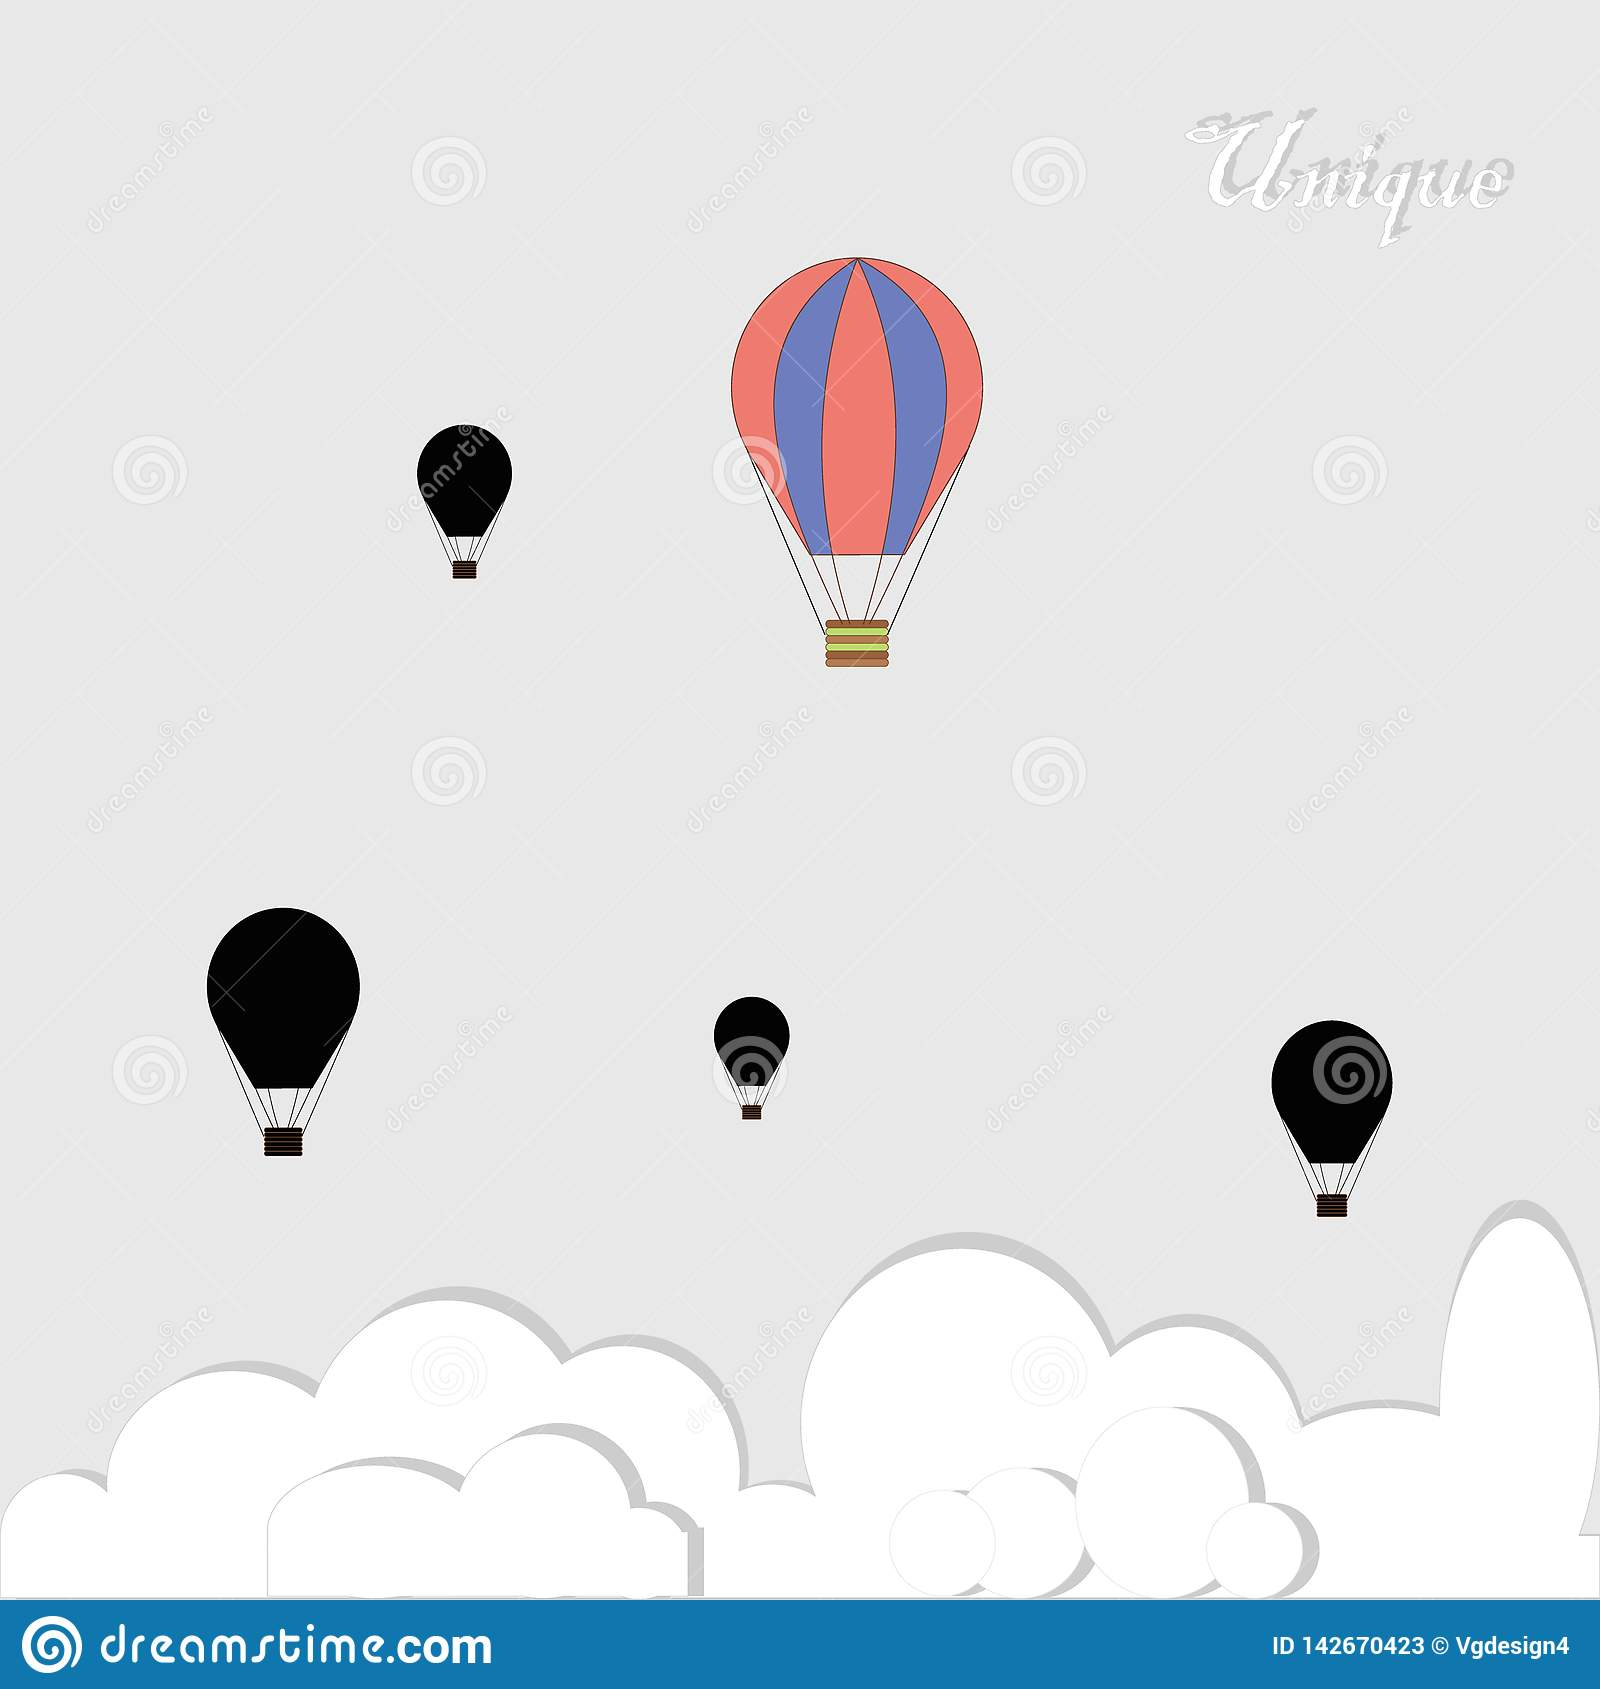 Black baloons and one colorful in competition on grey background